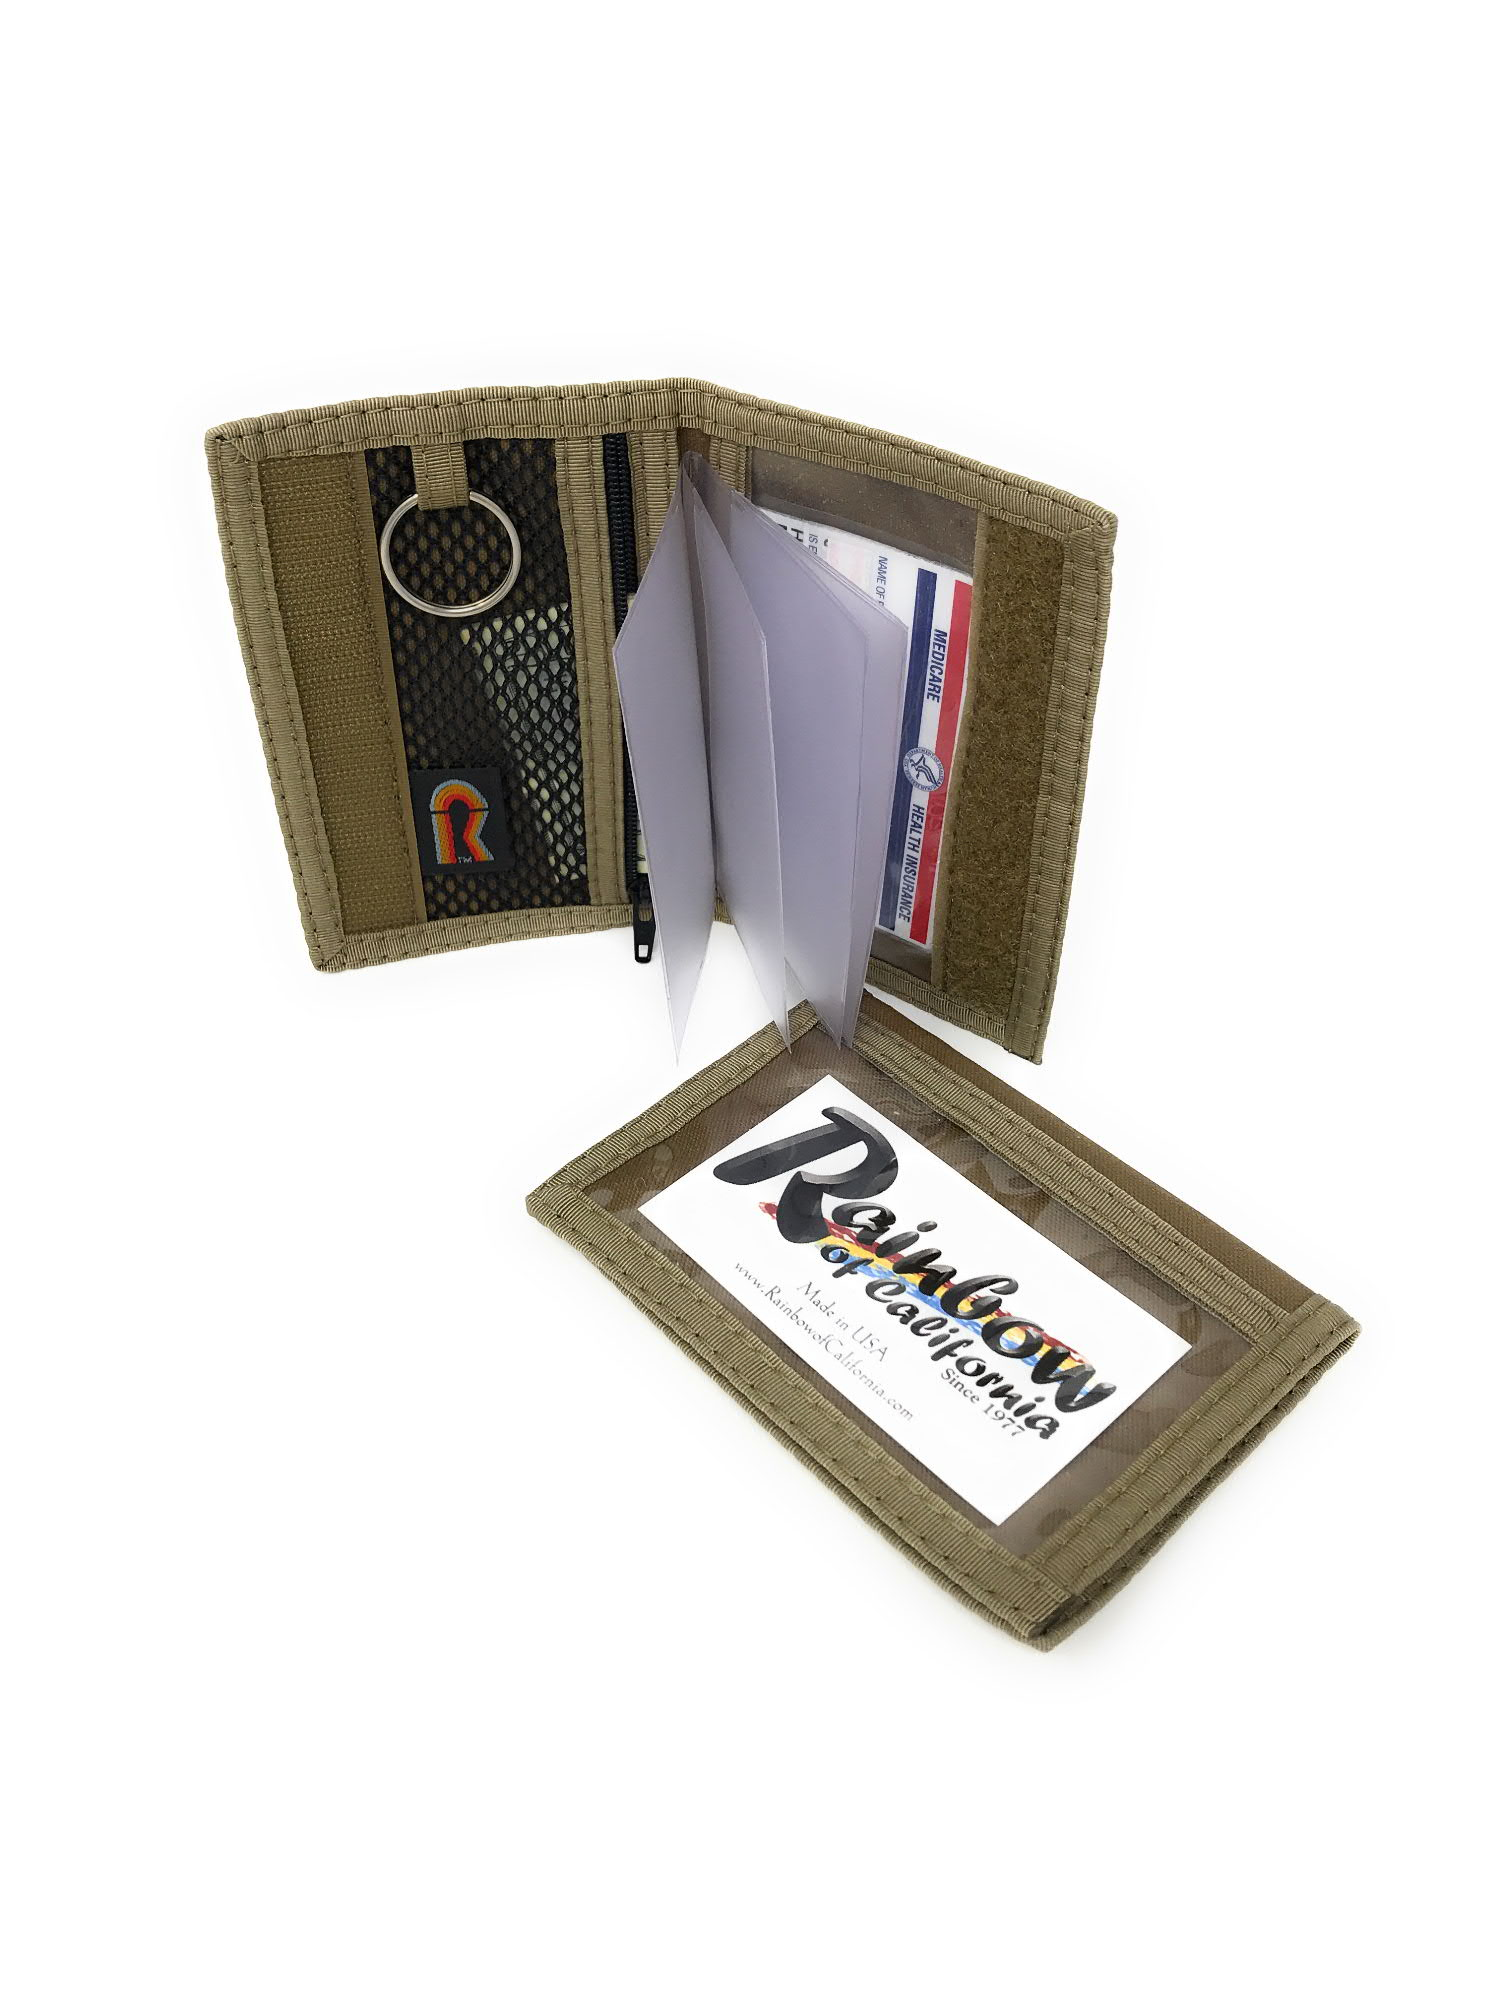 37b86c34c850 CLOSE-OUTS - Dual sided Pocket or Purse ID Holder - (Increase available  Capacity - Add Wallet Insert $1 More)